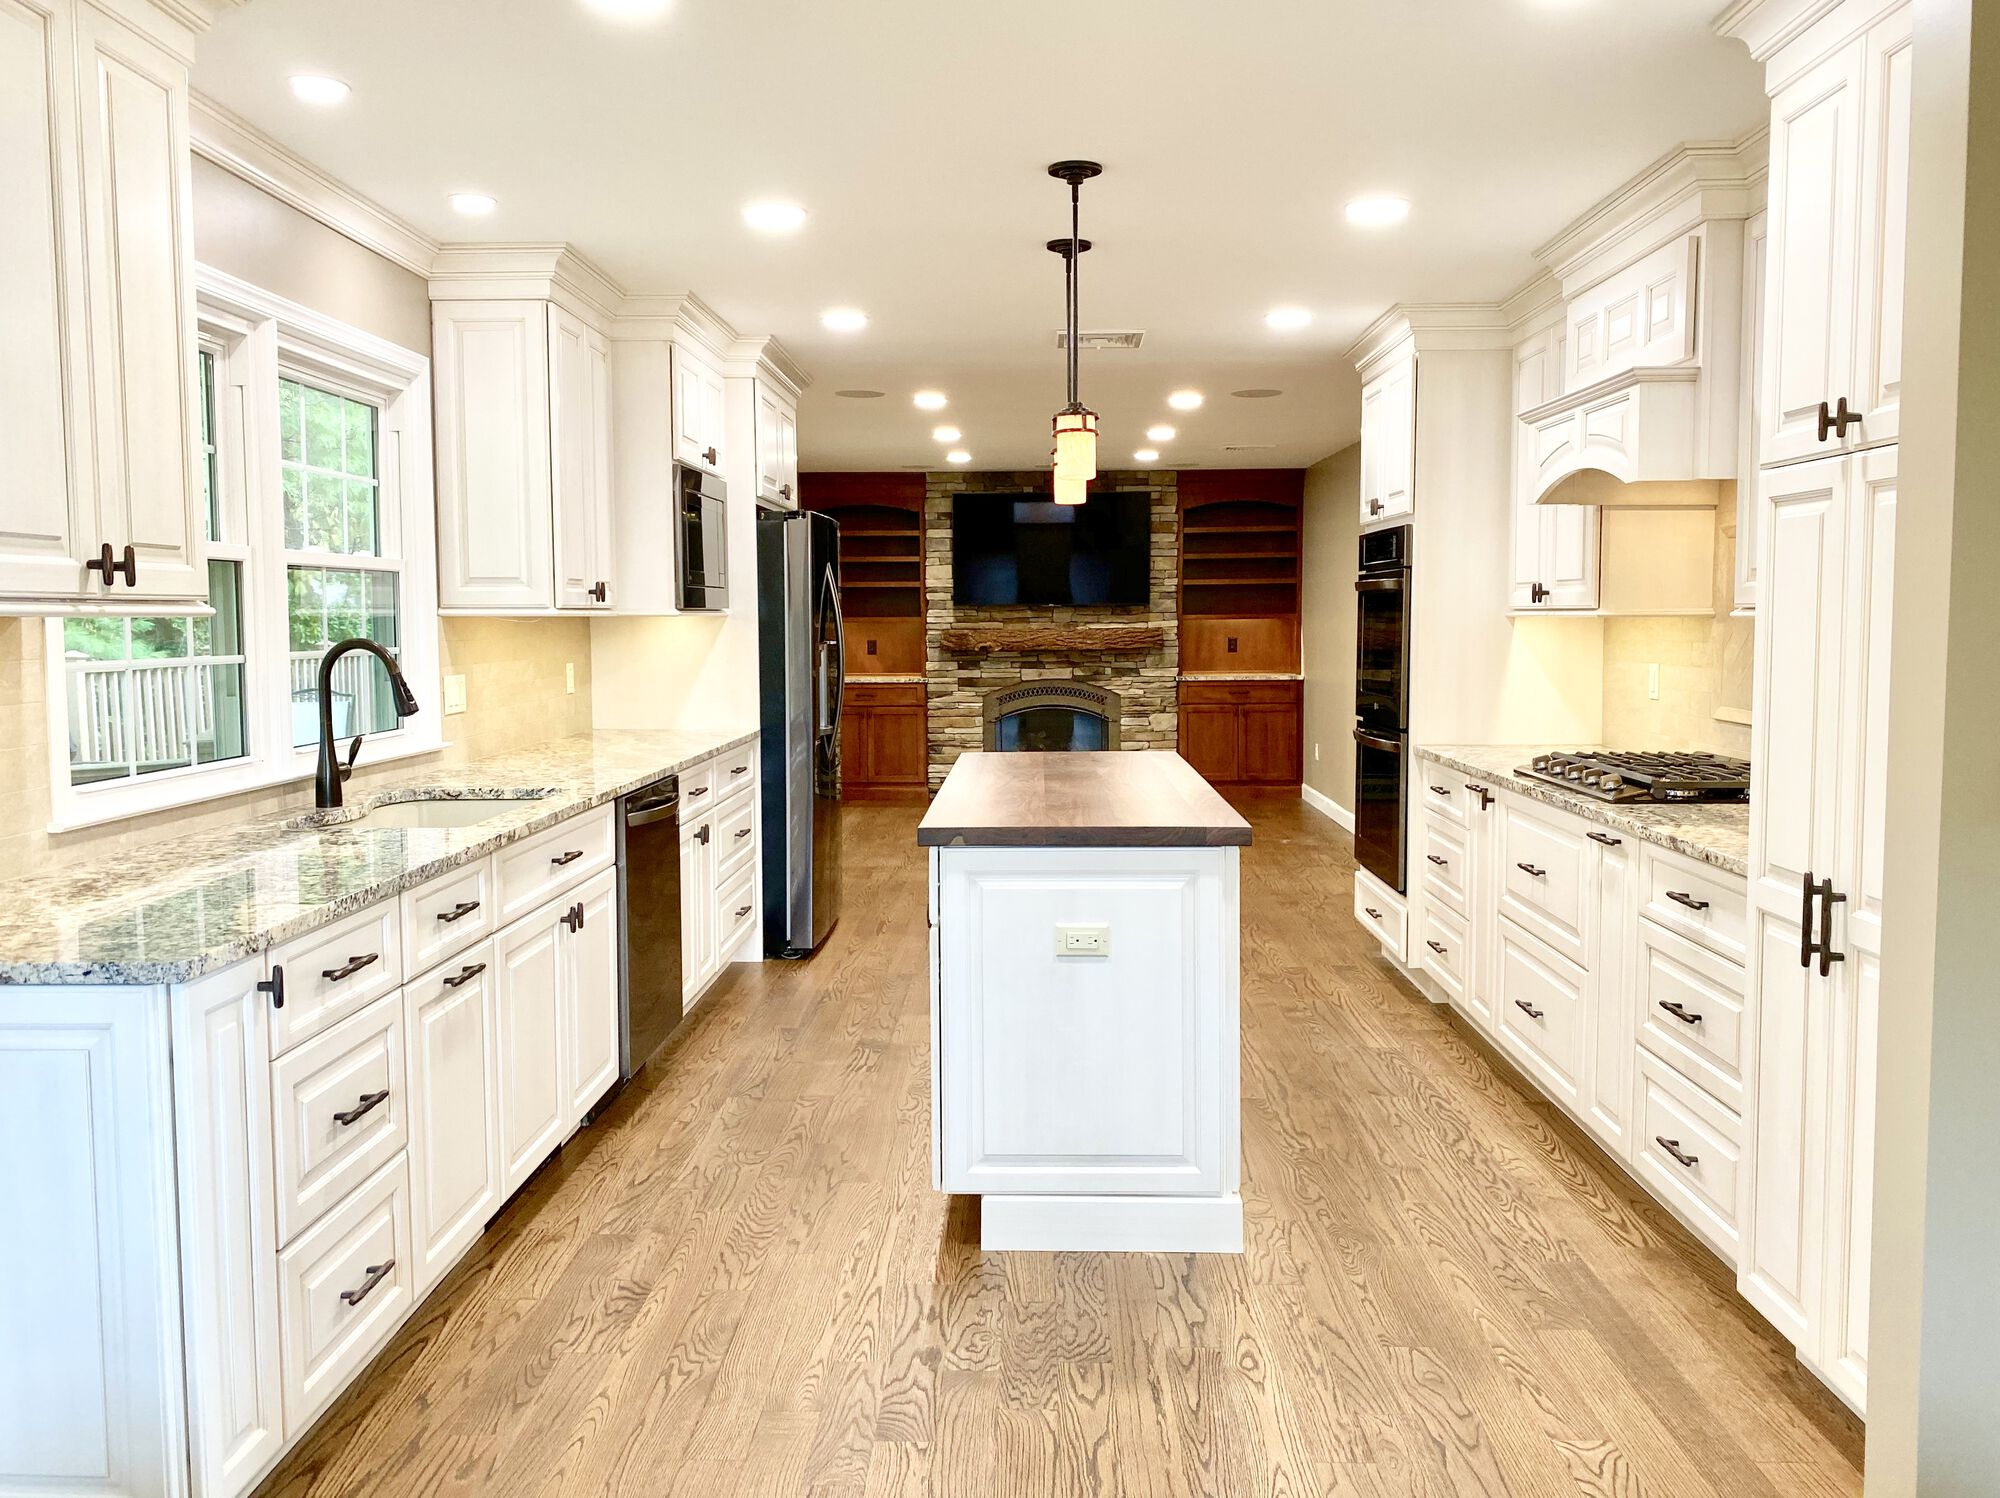 Brighton Cabinetry for Kitchen and Fireplace Wall, Oak Flooring, Walnut Wood Countertop in Rockaway, Morris County NJ